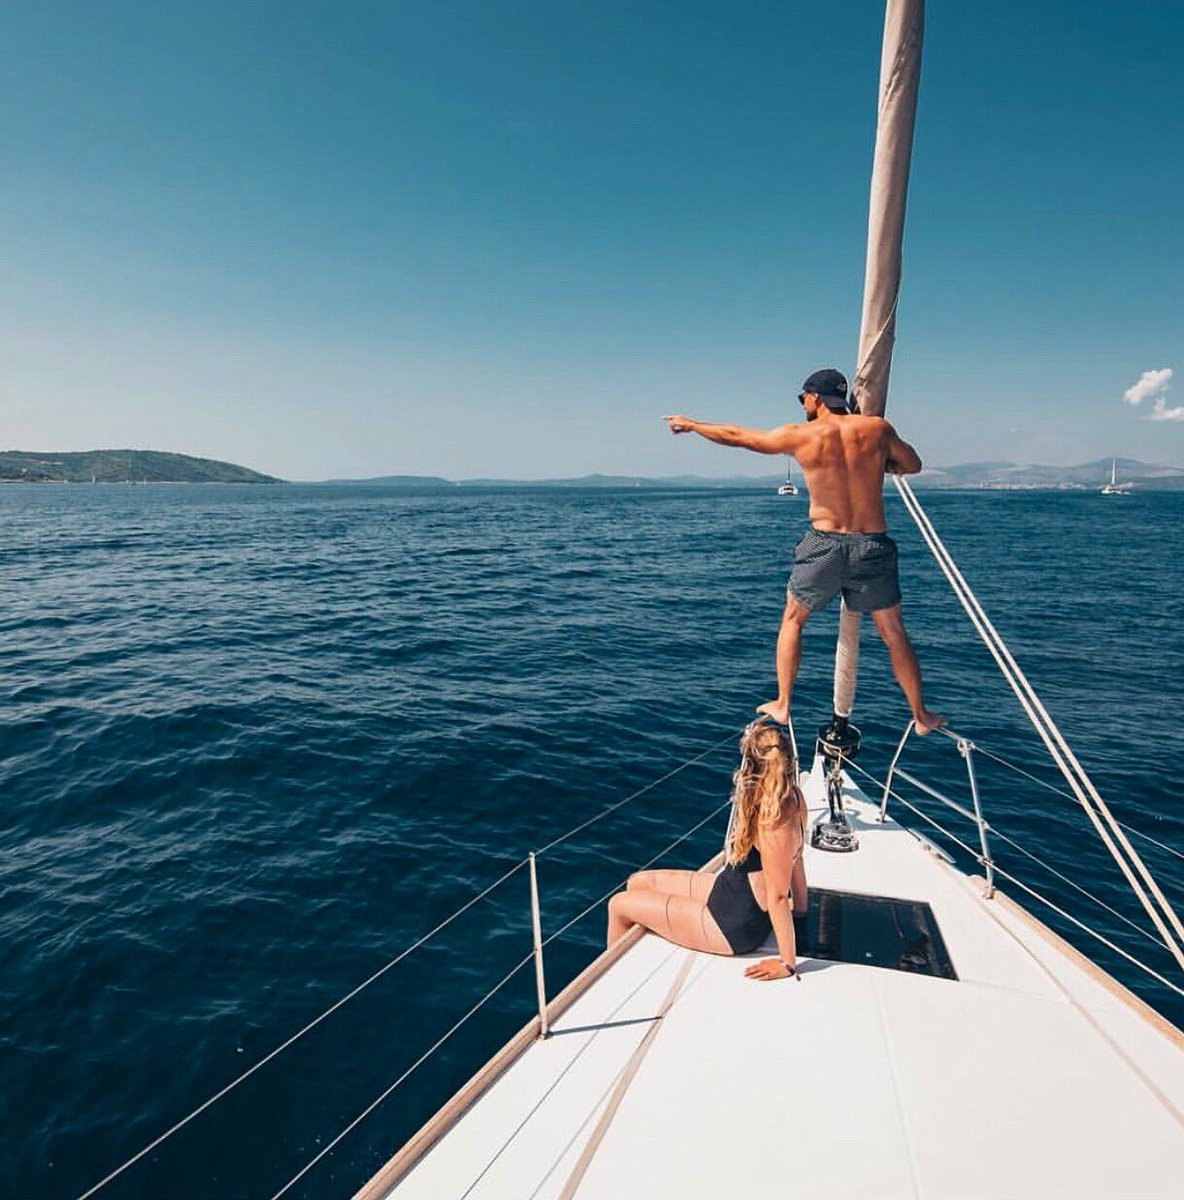 Select a route, plan, and sail. ⚓️ Wind is blowing towards the summer. 🌬 —— #travel #vacation #mondaysmotivation #sailor #sailing #sun #freedom #summer #feelings #sunset #summervibes #holiday #charter #oceanvibes